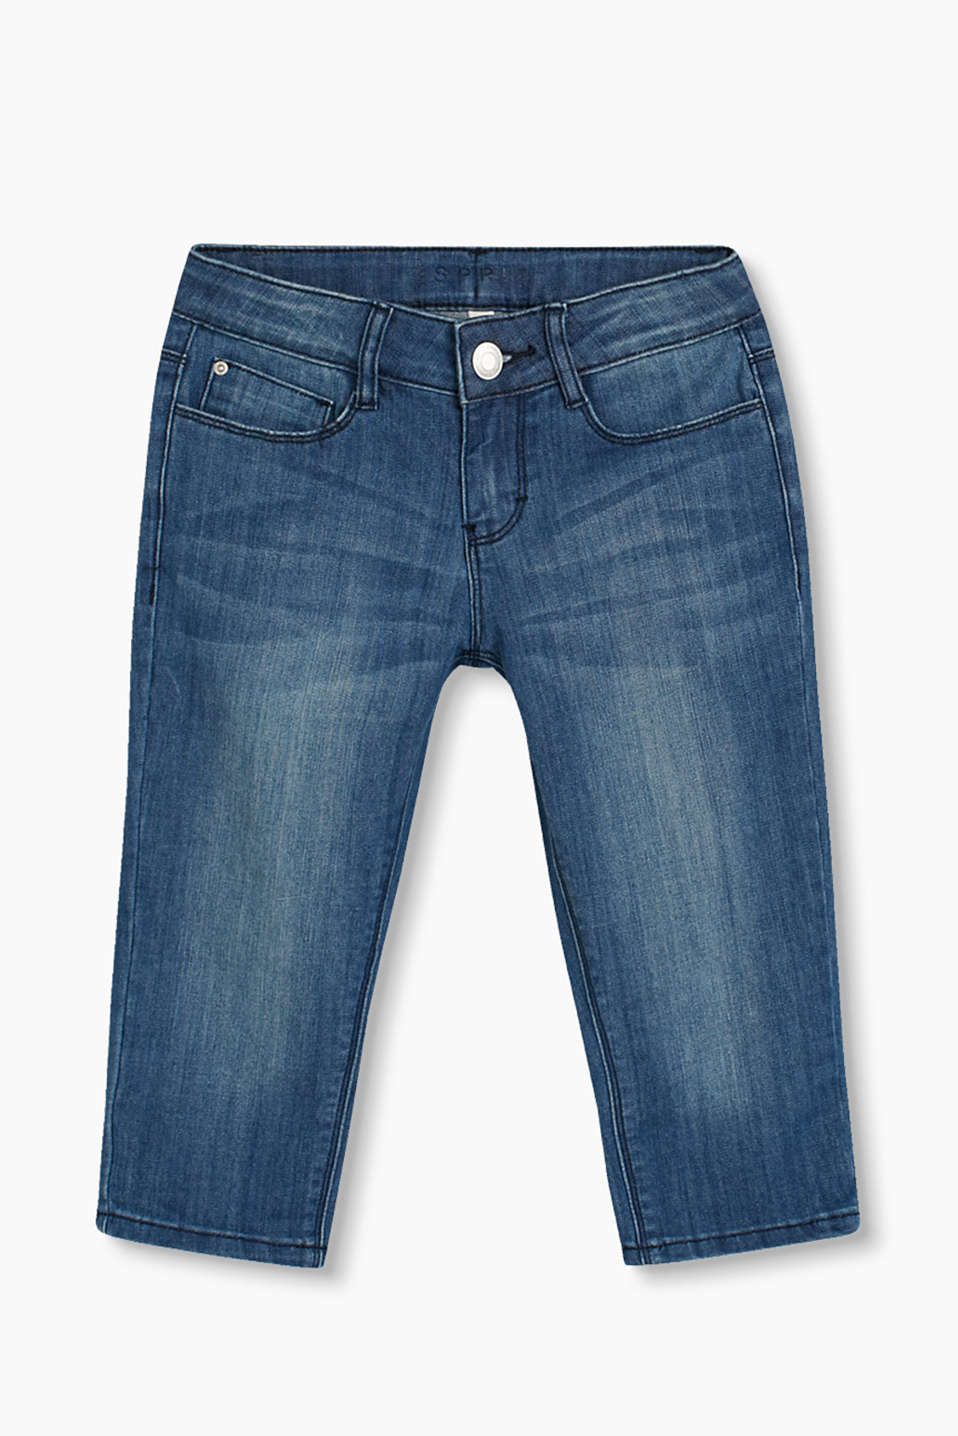 These three-quarter length jeans in casual washed stretch denim go with almost everything